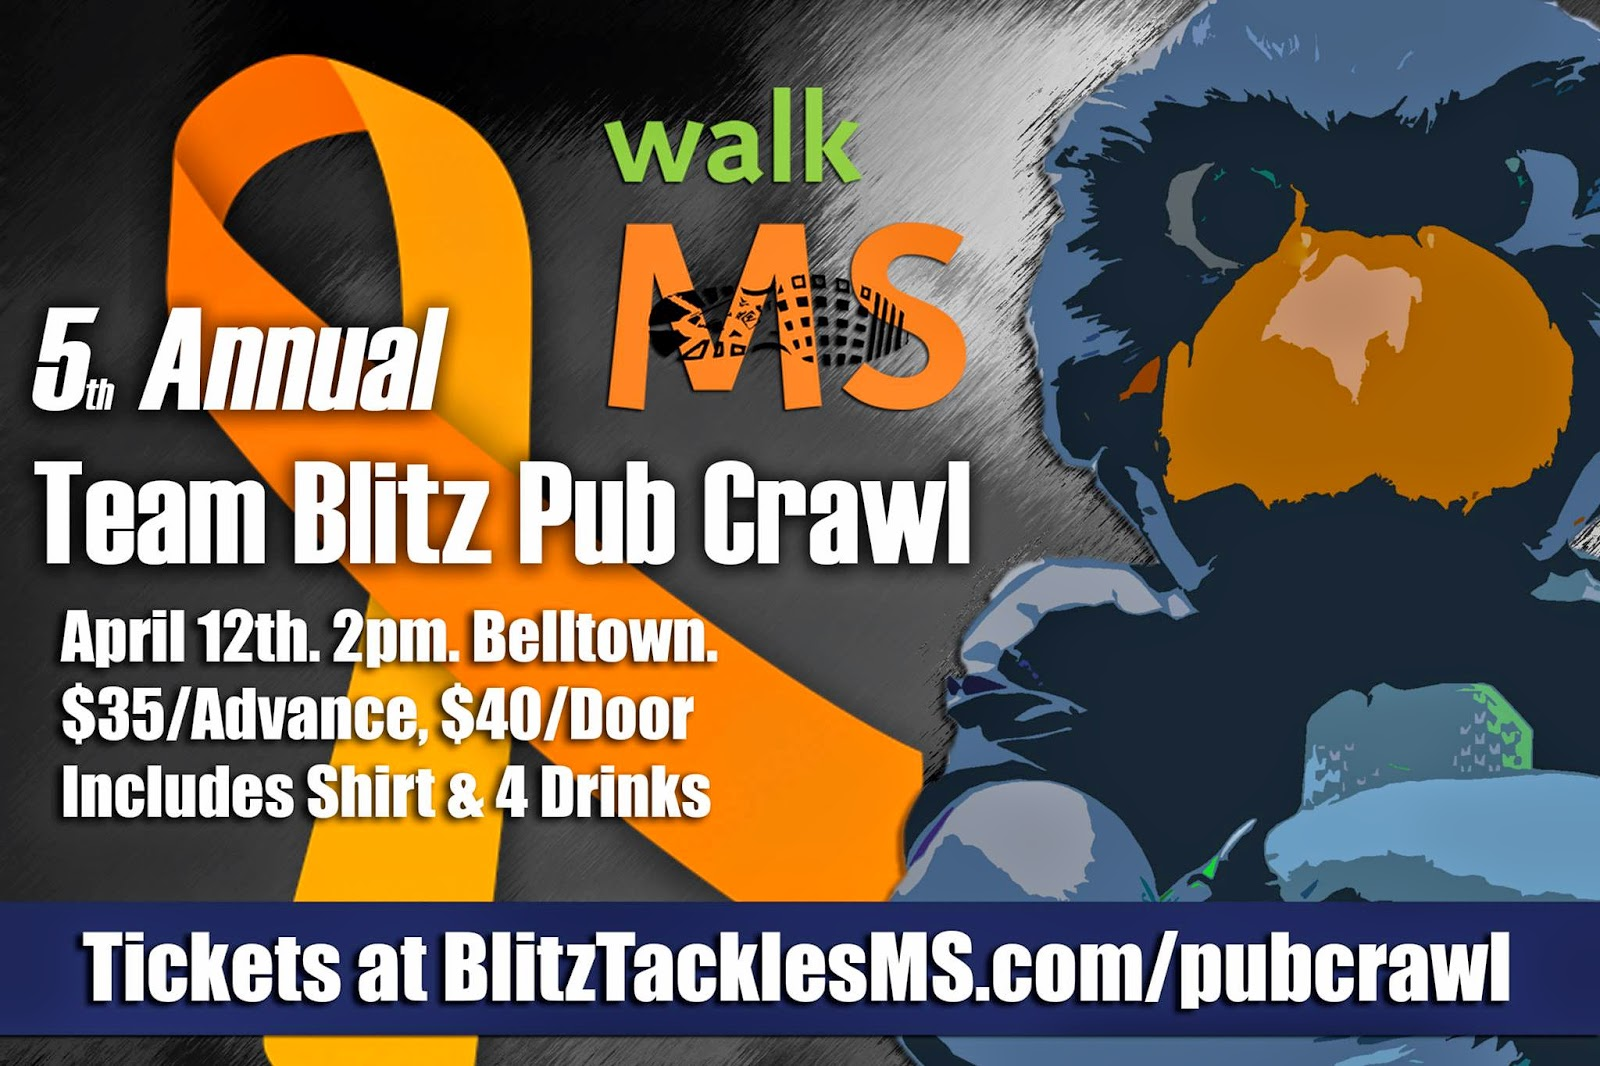 Team Blitz Tackles MS Pub Crawl 2014